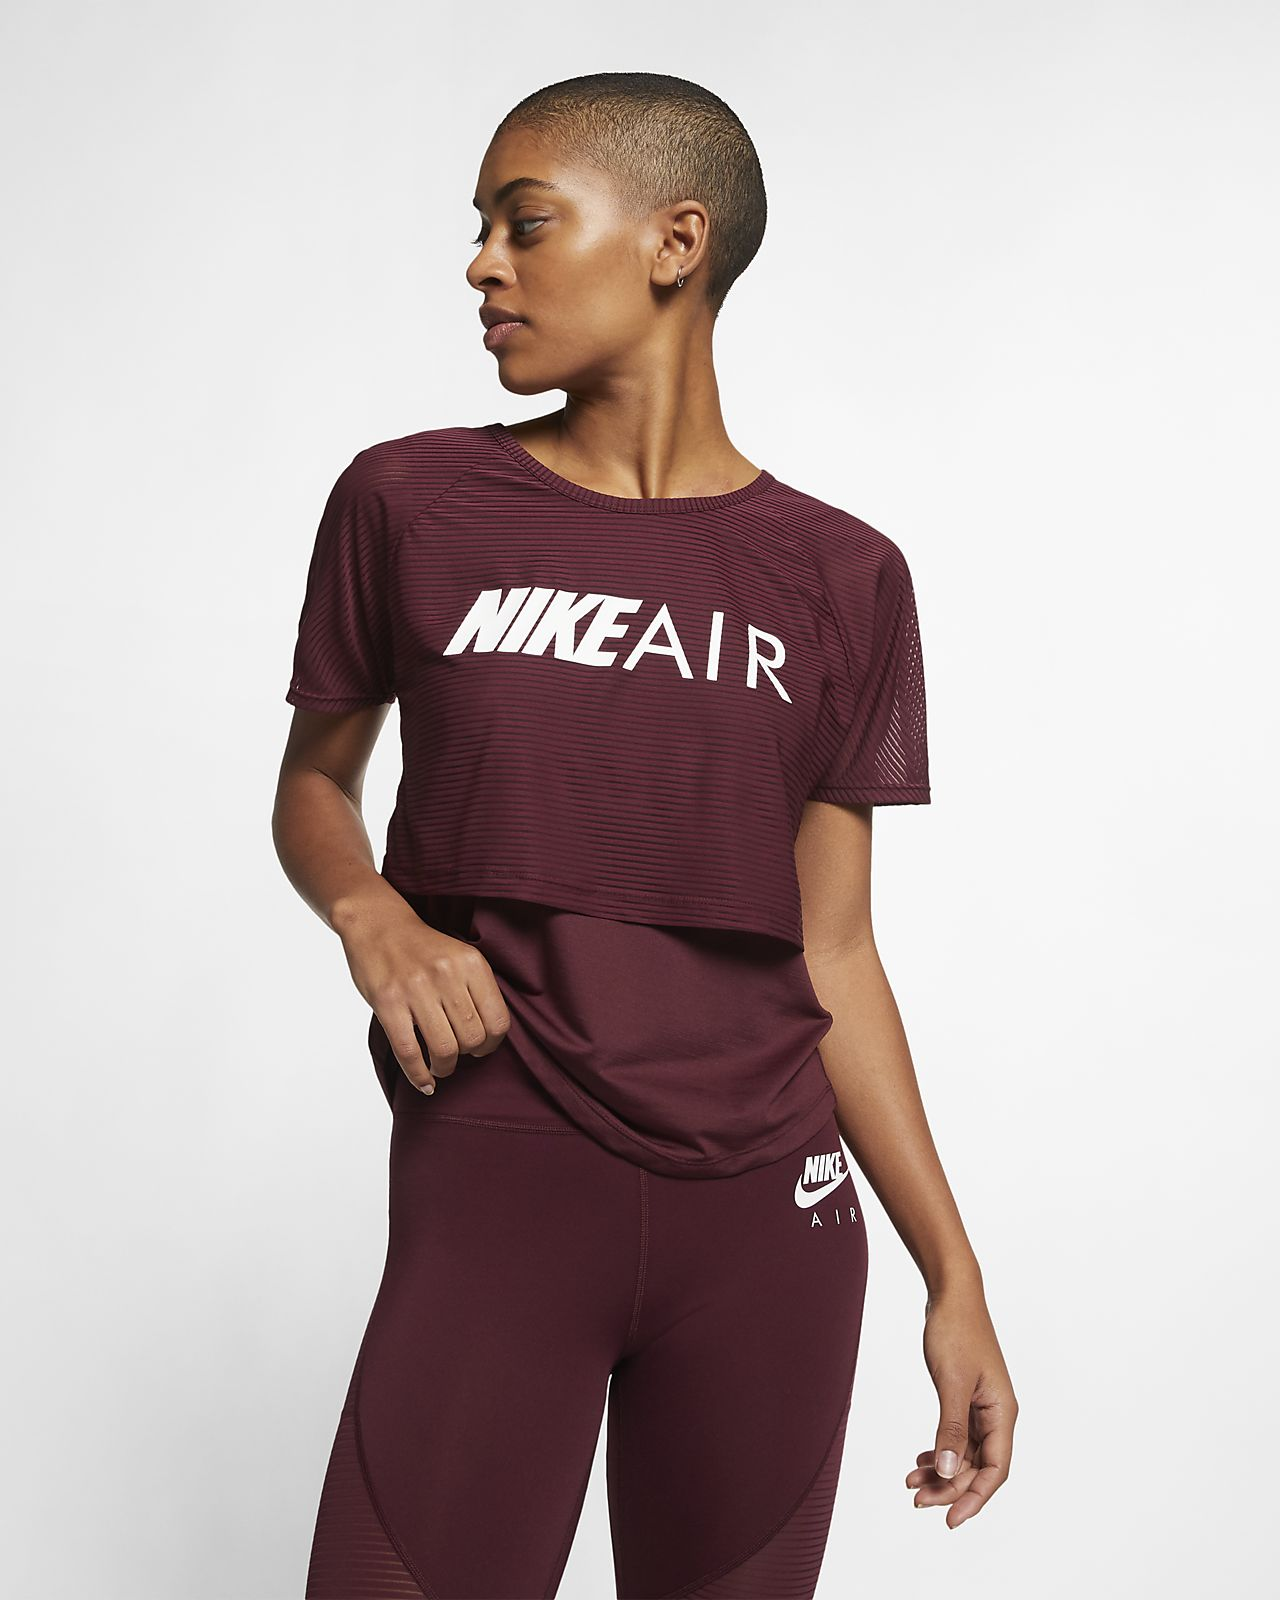 c0073c05e3c Nike Air Women s Graphic Running Top. Nike.com NZ